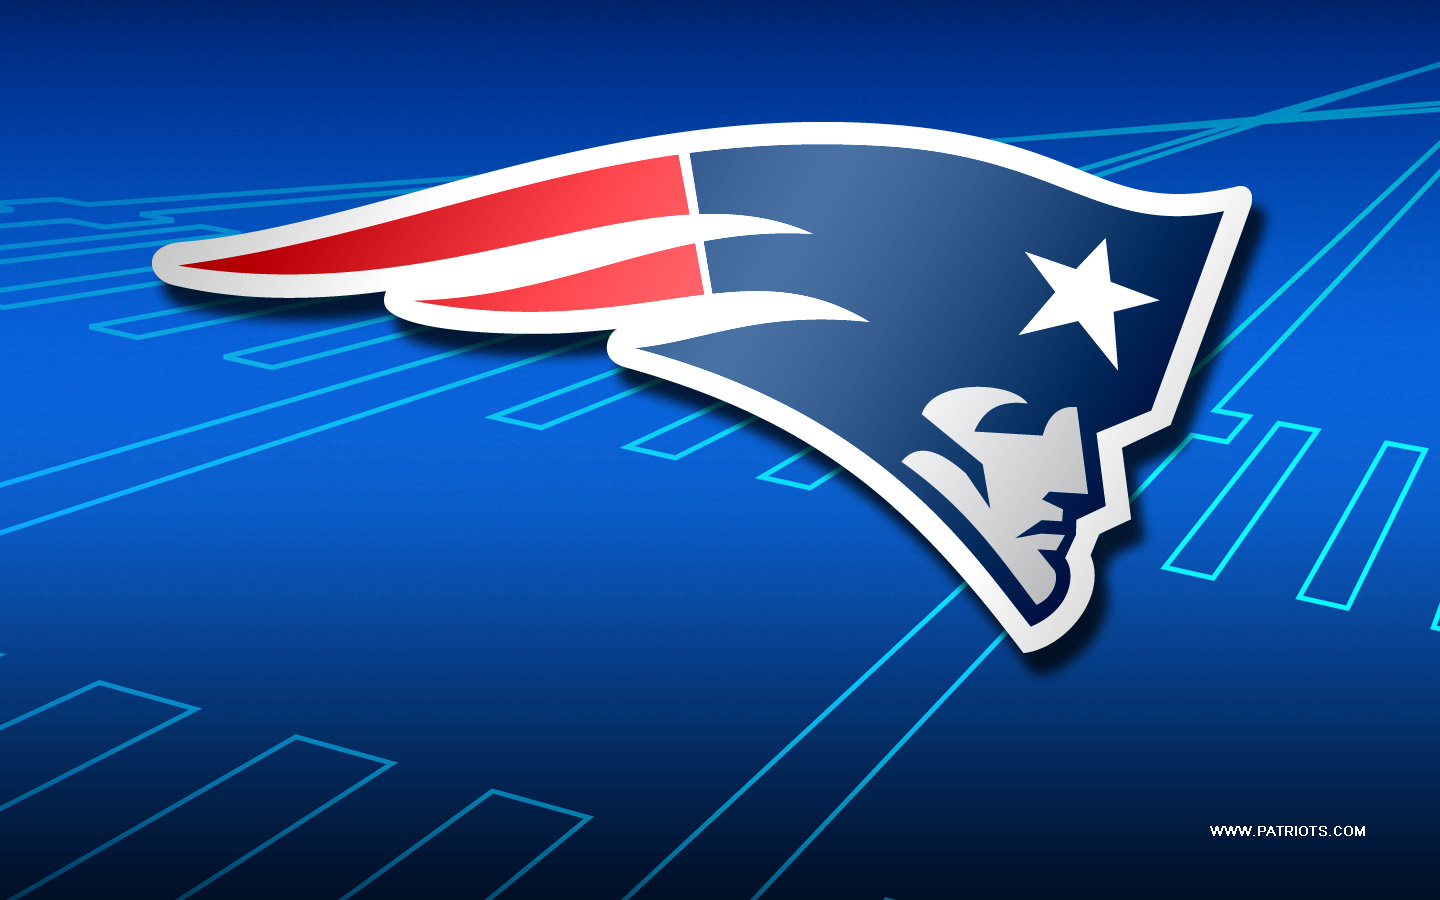 patriots   Images Search Bicaracoid 1440x900